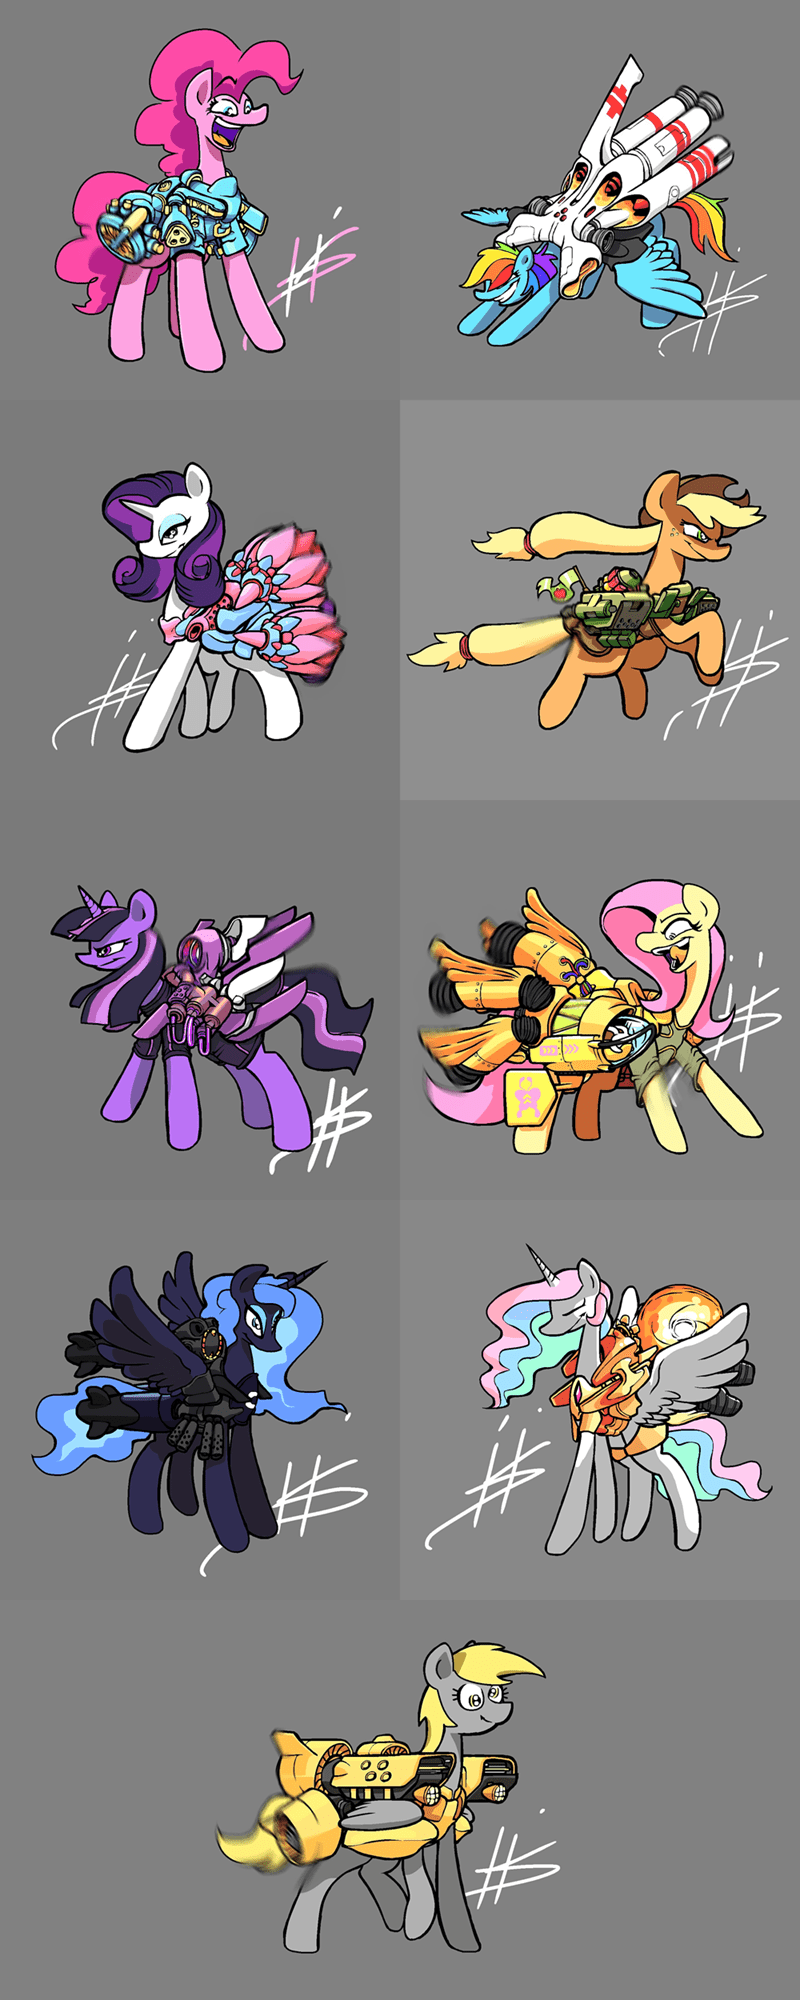 applejack derpy hooves twilight sparkle pinkie pie princess luna rarity princess celestia pencil brony horsepower fluttershy rainbow dash - 9094580224